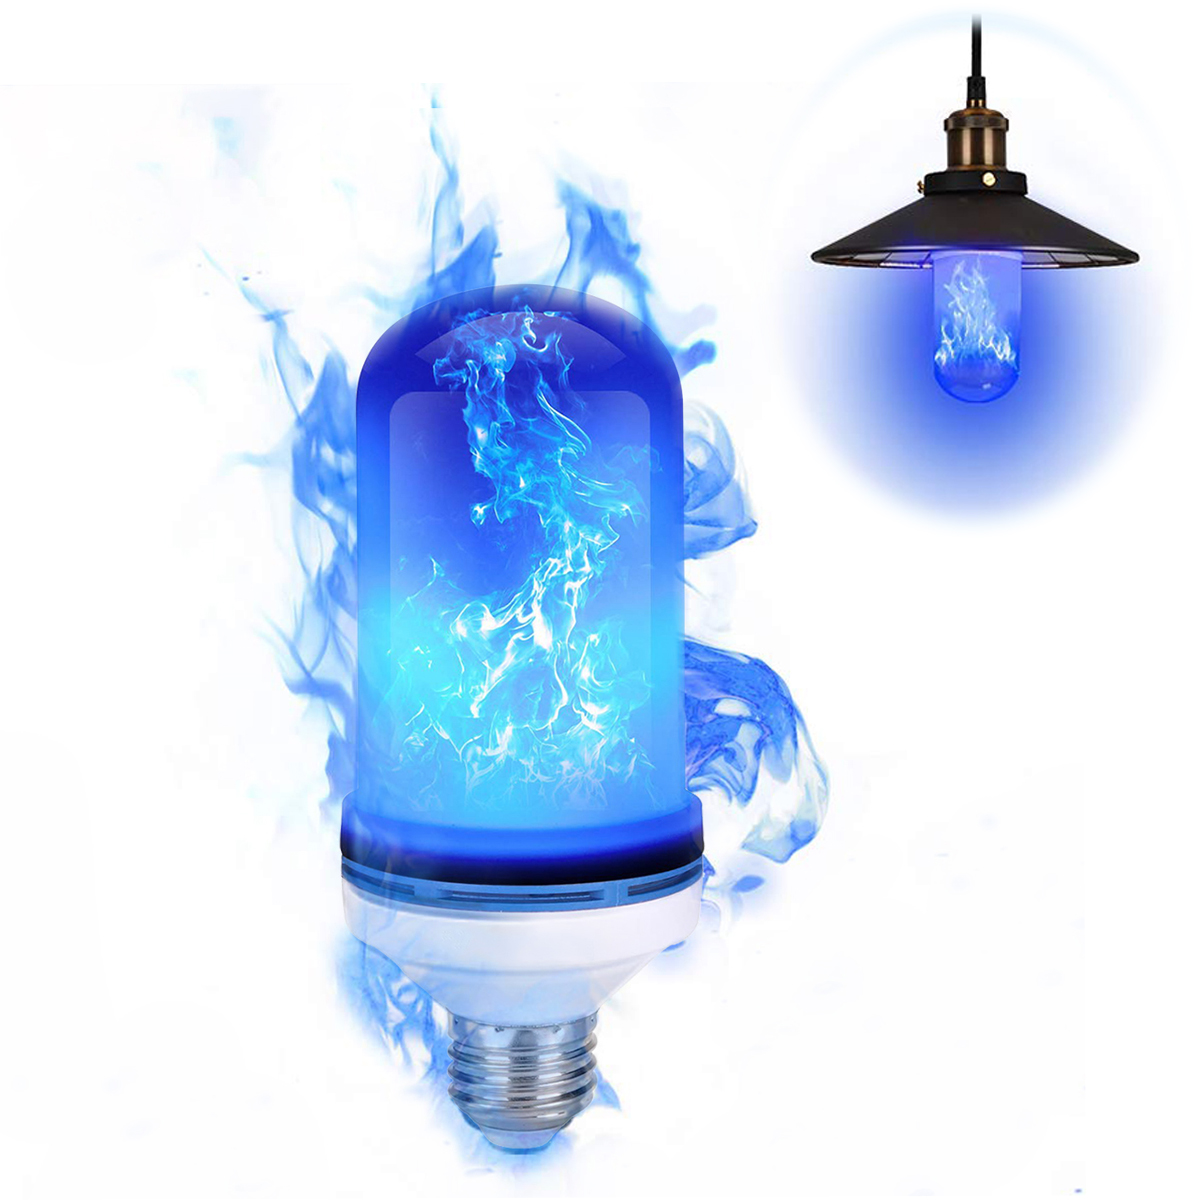 E27 Flame Lamps 3Modes LED Flame Effect Light Bulb Flickering Emulation Fire Light Blue Flame For Christmas Party Home Lighting